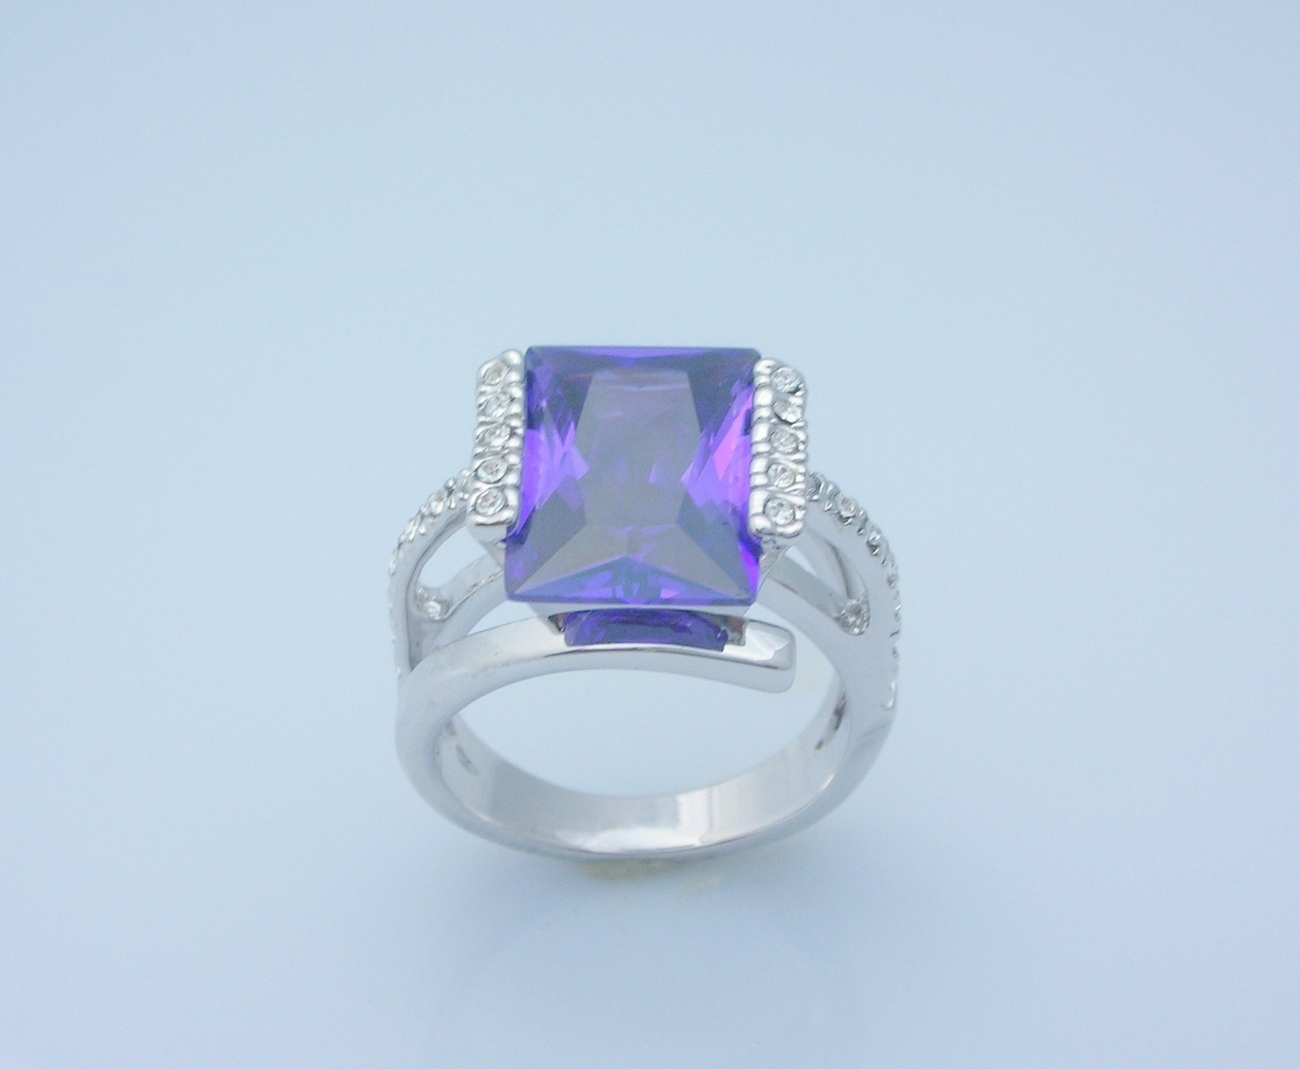 12.6 Carat Alexandrite Princess Cut Ladies Fashion Ring Size 8